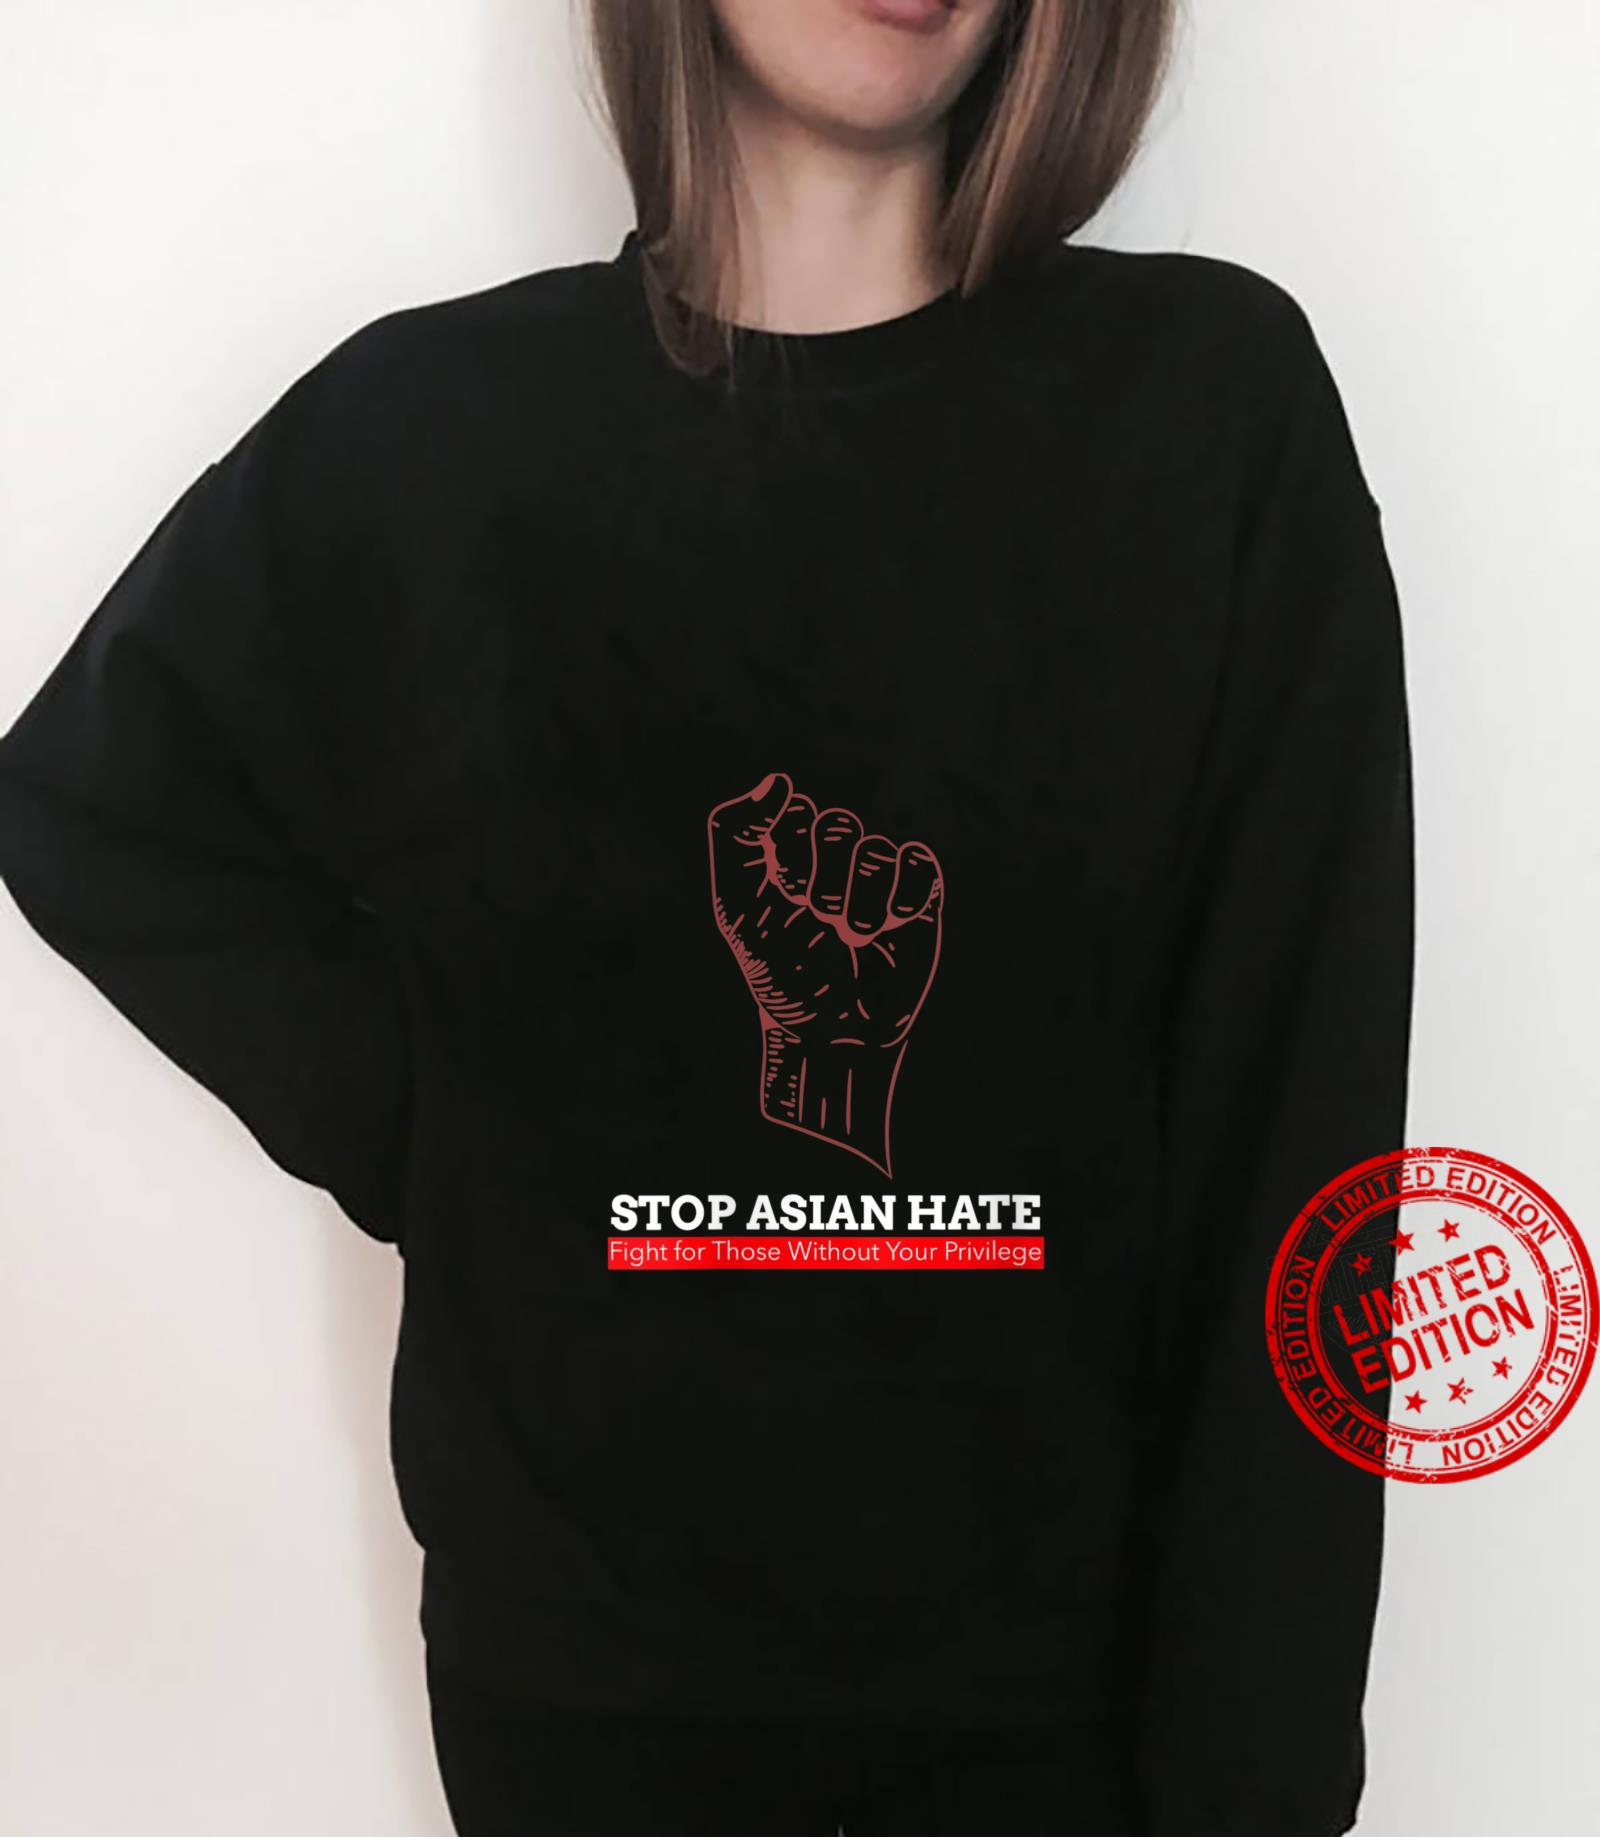 Womens Stop Asian Hate Fight for Those Without Your Privilege Shirt sweater